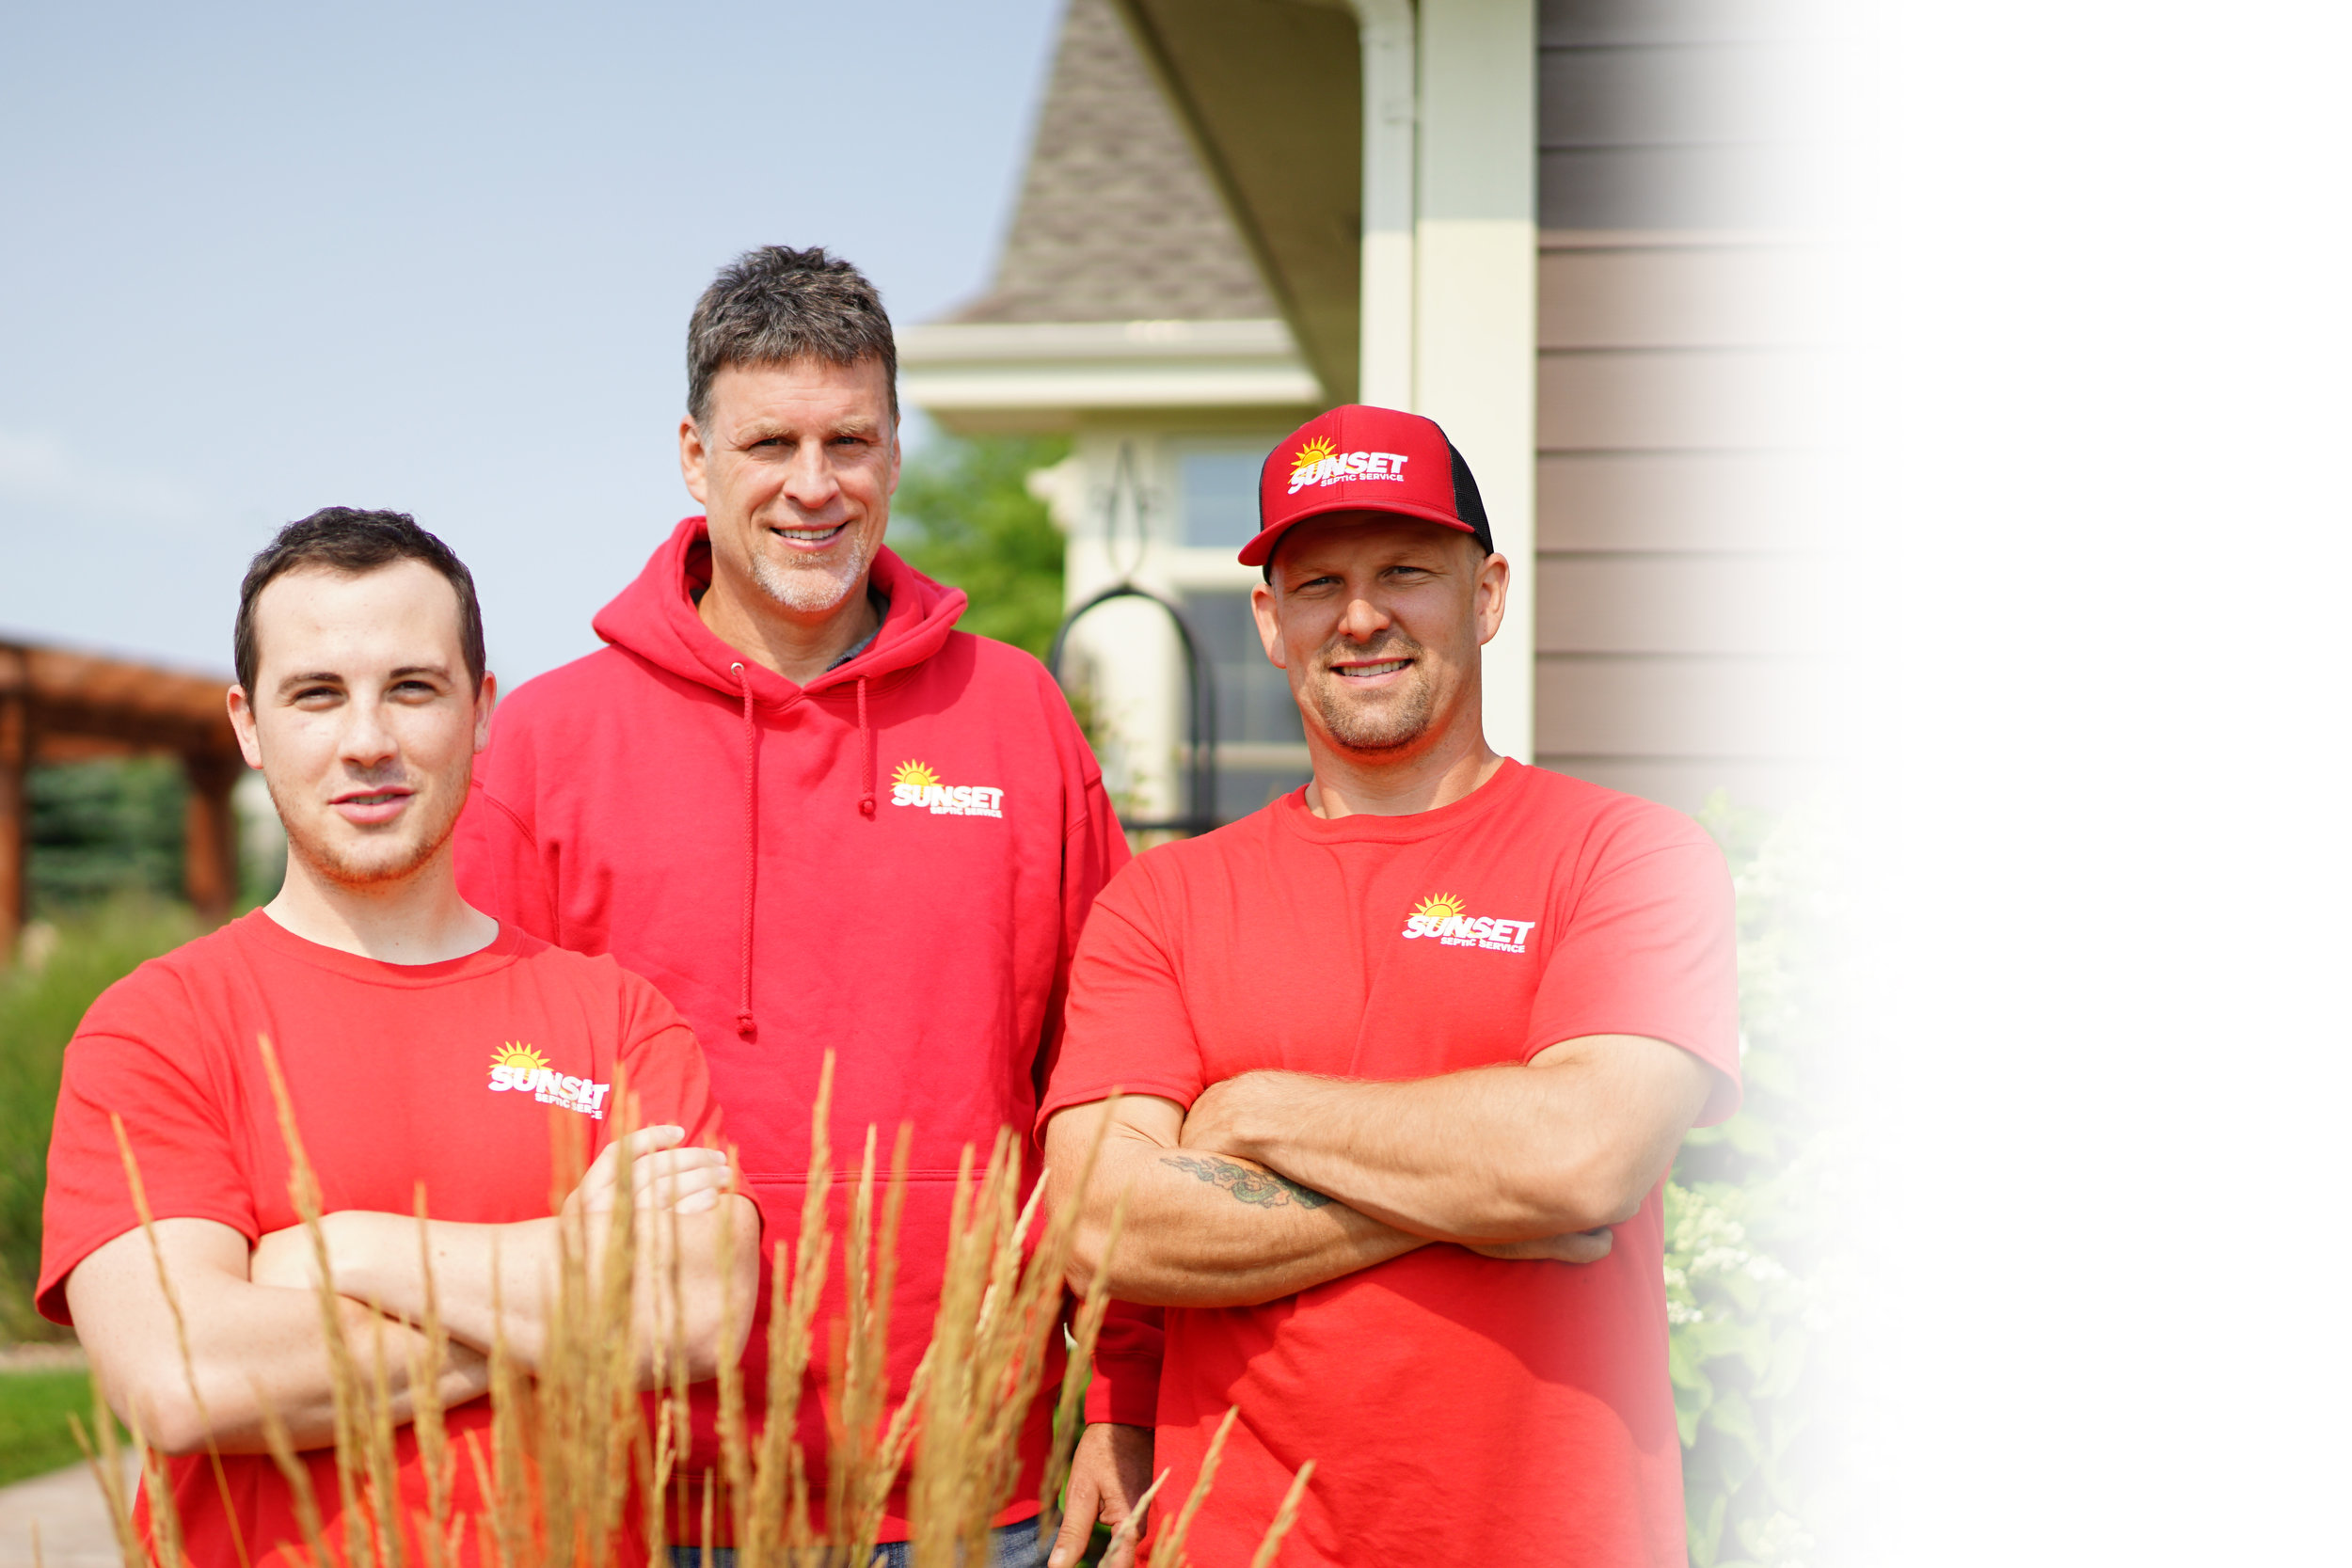 30 Years of Service - No spills, no oil leaks on your driveway, no messes, and overly friendly service. We stand behind our experienced and friendly drivers and want to make this experience quick, seamless, and enjoyable for you. We've been doing this a while, and your satisfaction is our number one concern!